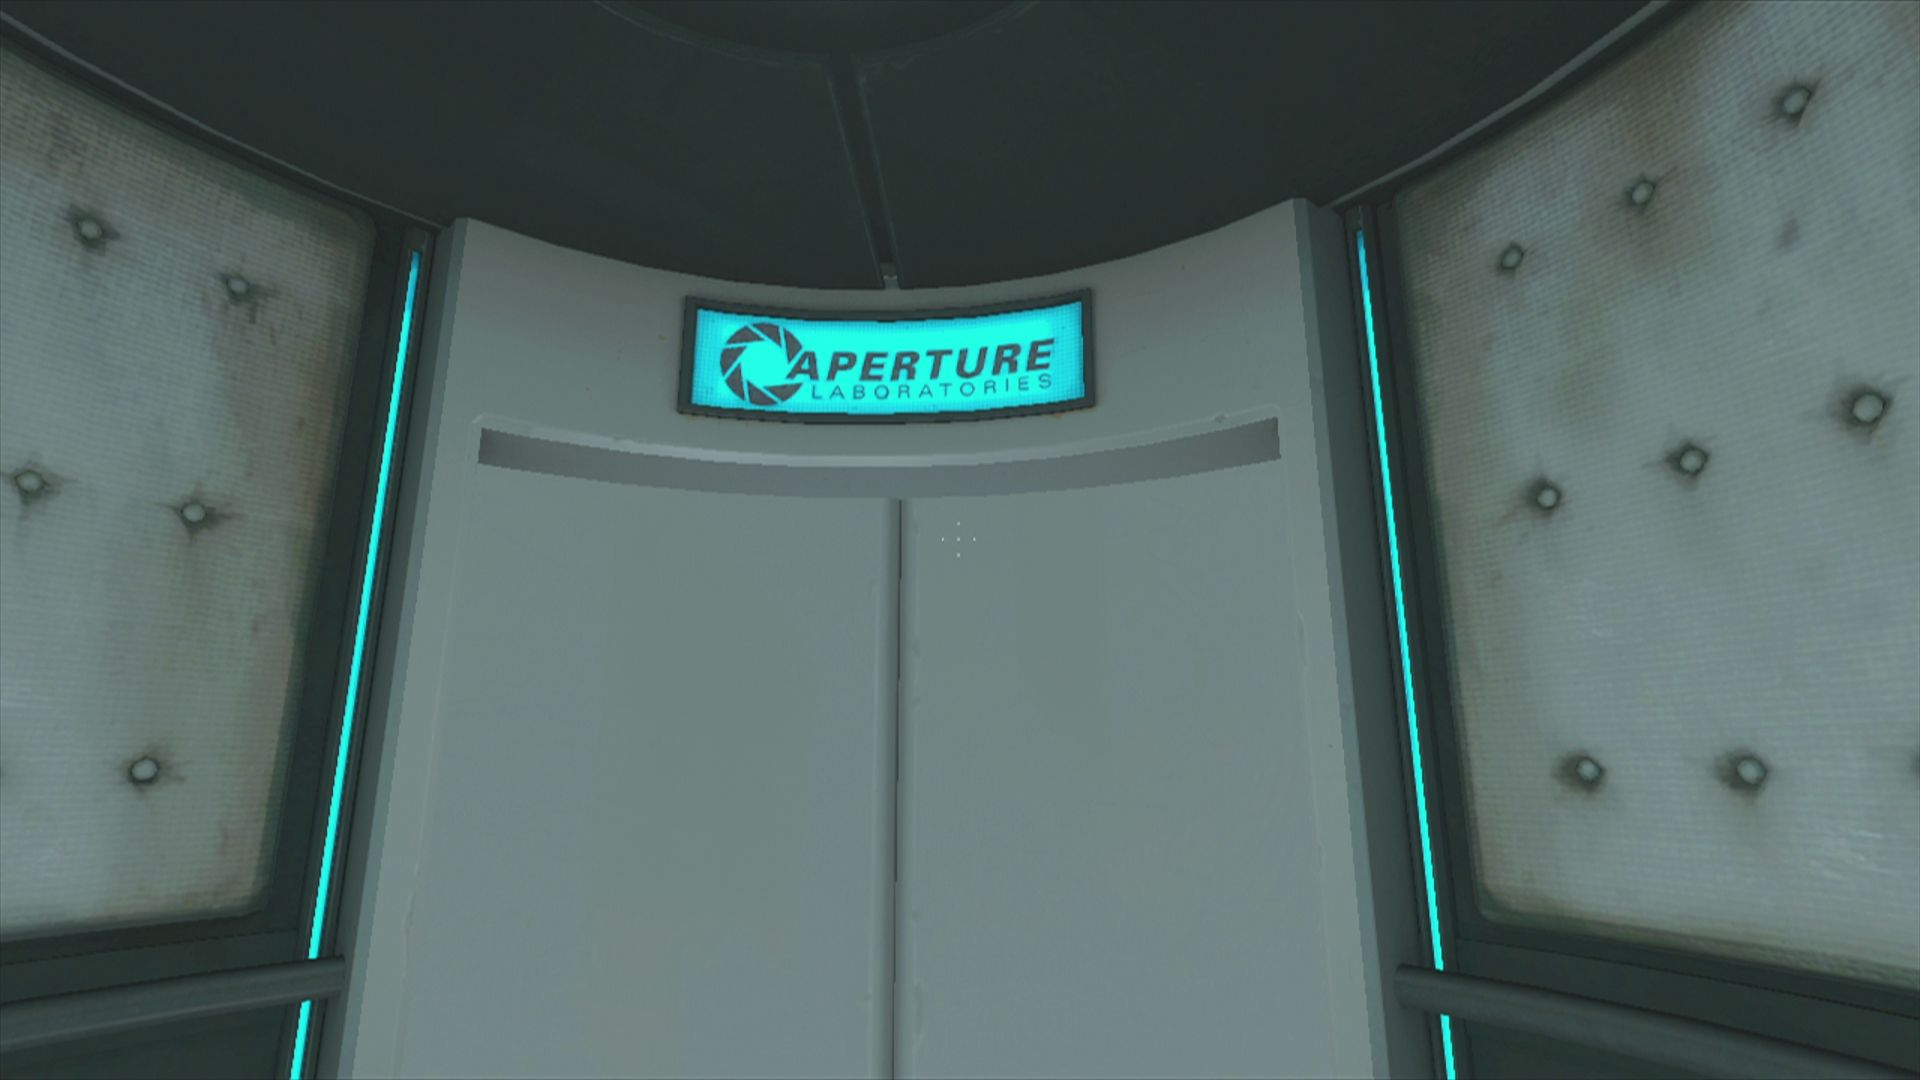 The Orange Box Xbox 360 <i>Portal</i>: Aperture Science Enrichment Center is the location of your adventure